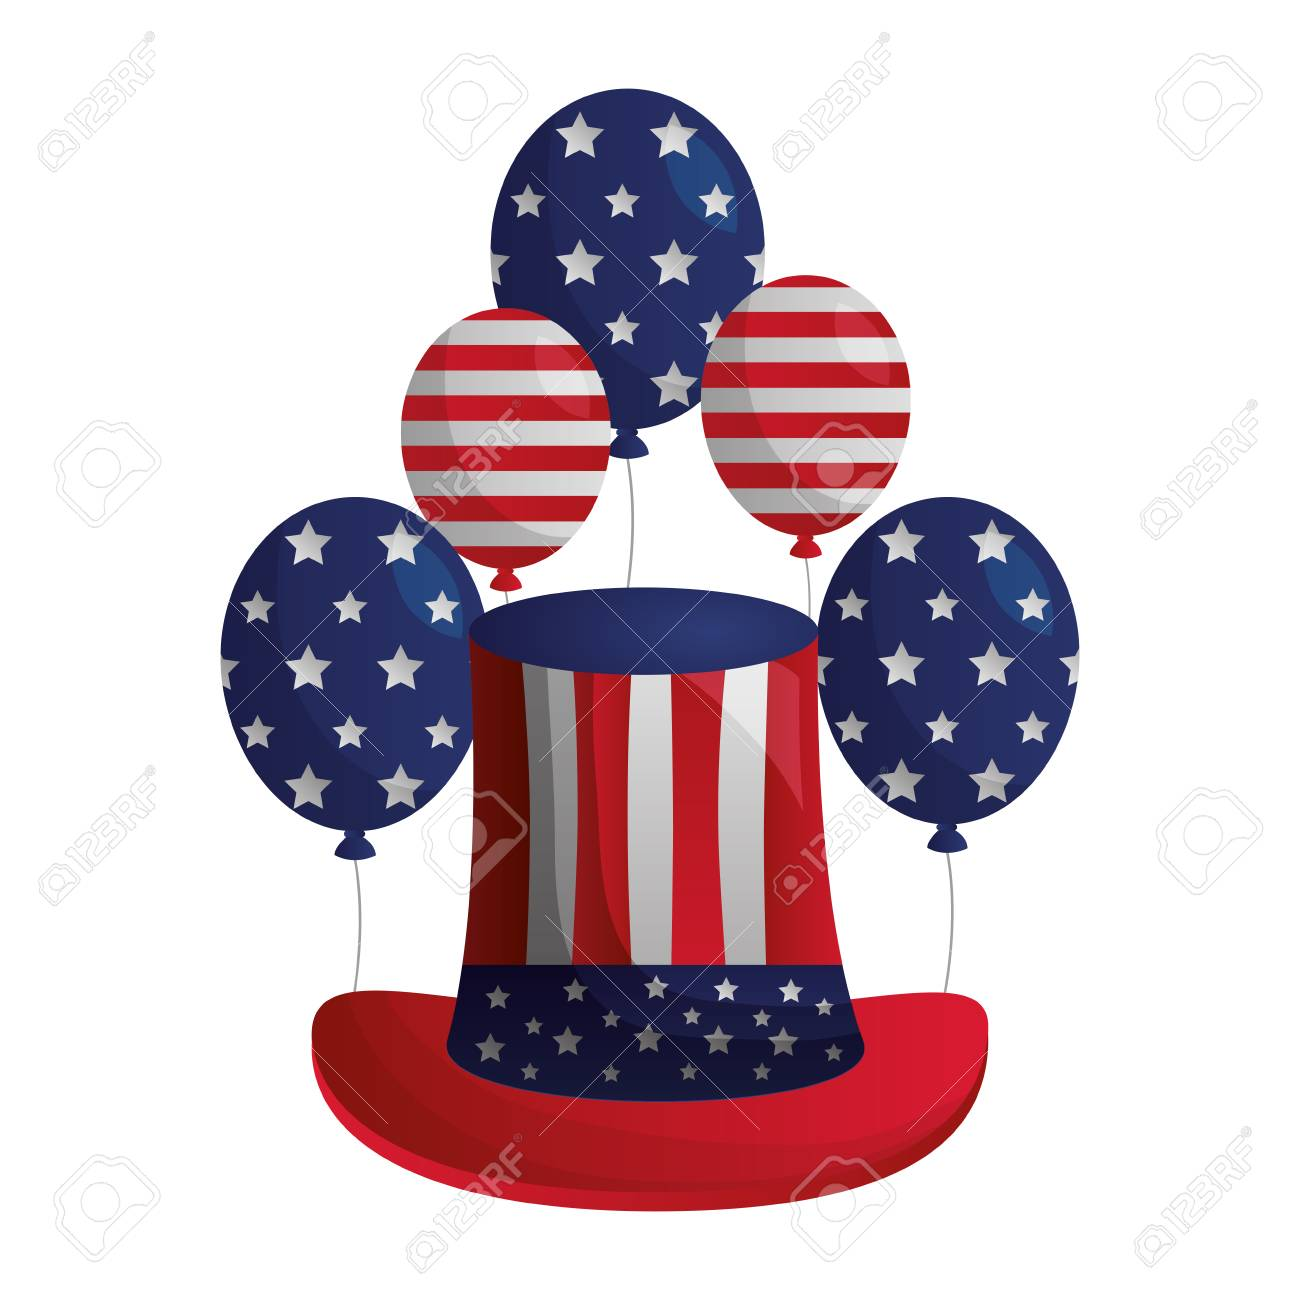 american flag balloons and hat happy presidents day vector illustration.